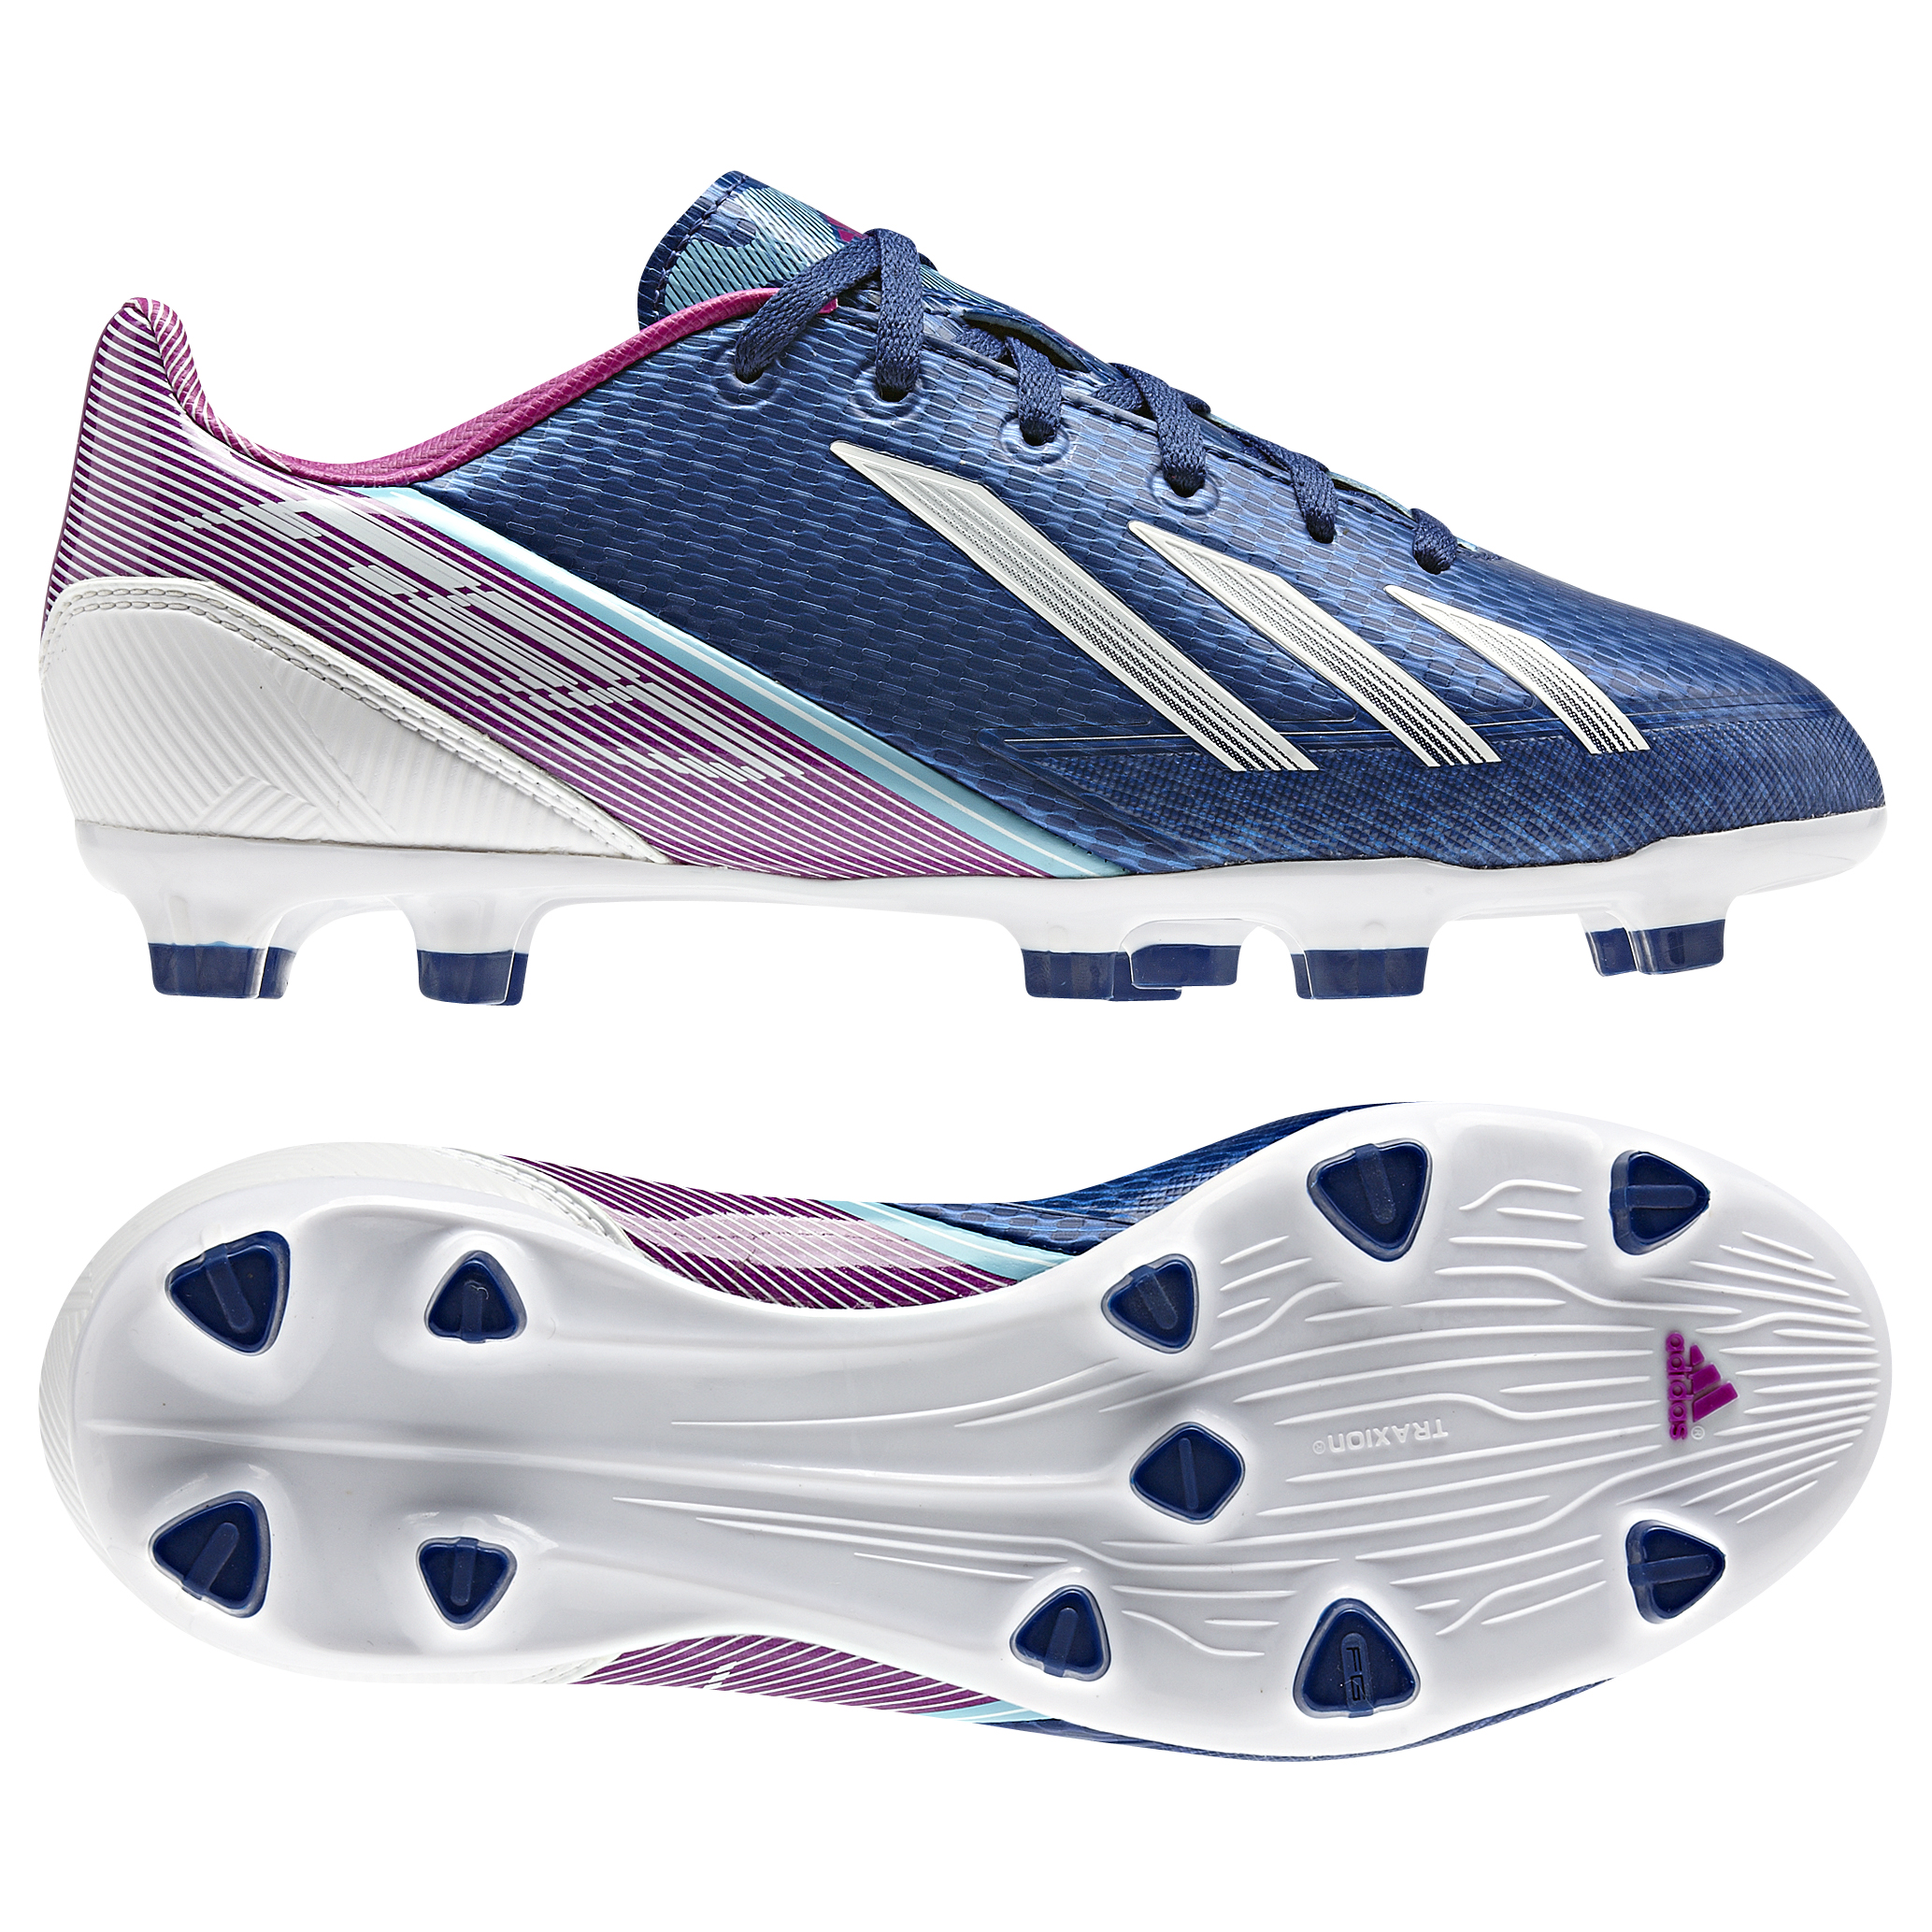 Adidas AdiZero F30 TRX Firm Ground Football Boots  Dark BlueWhiteVivid Pink  Kids